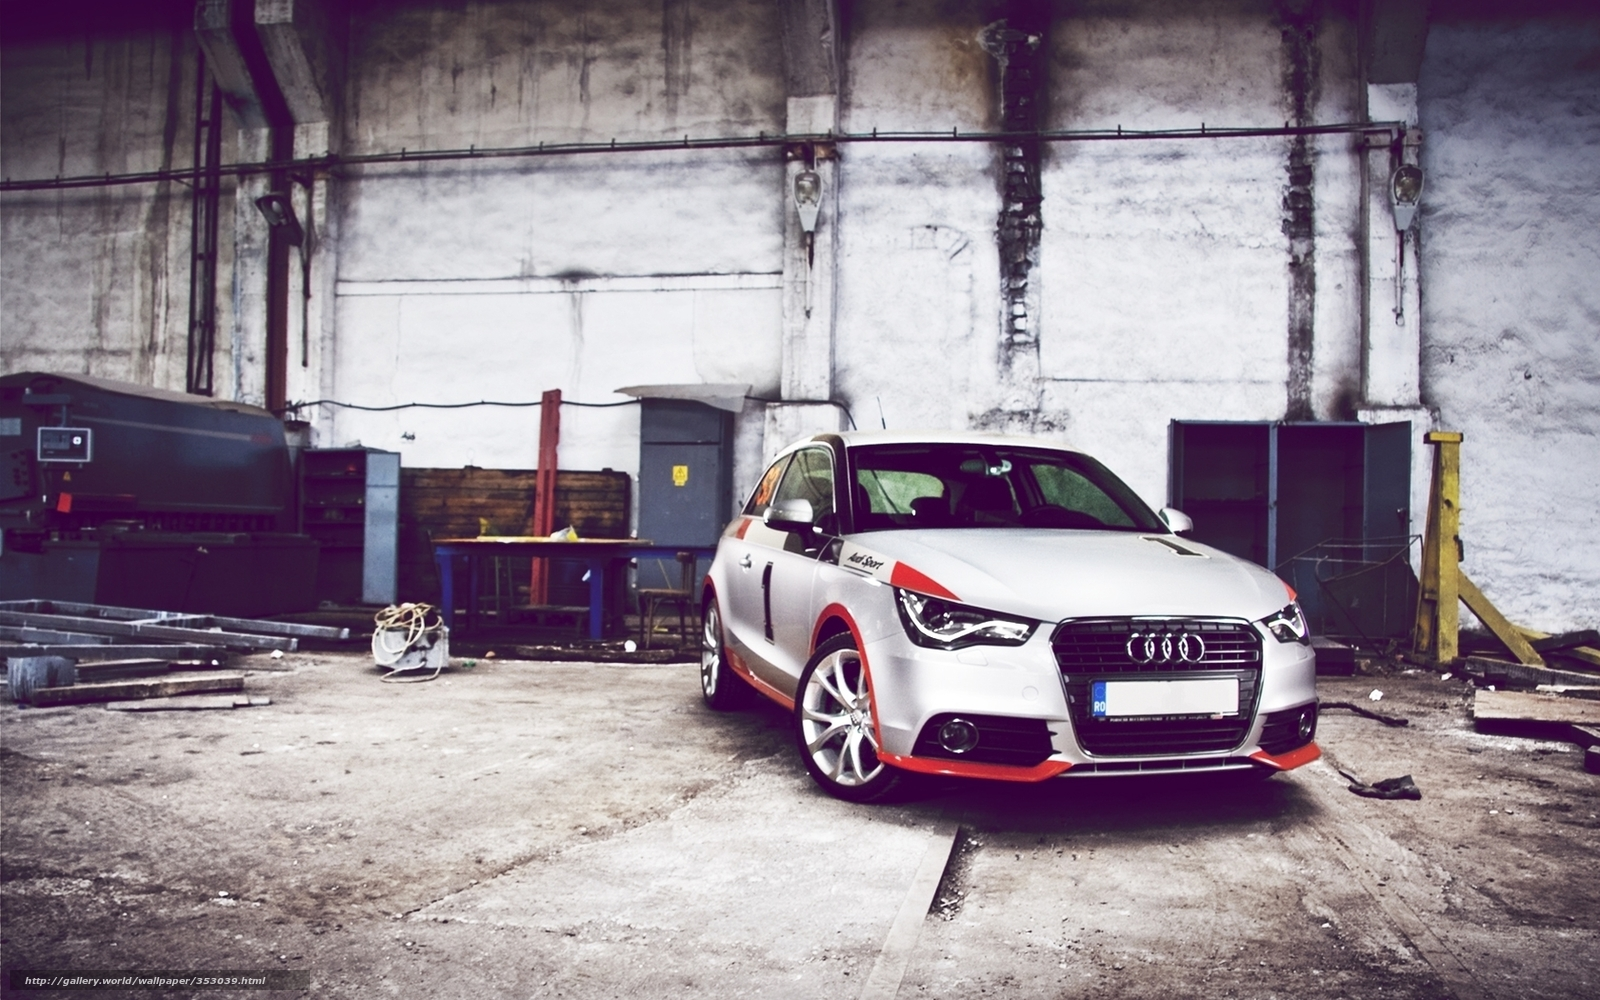 Download wallpaper garage car wallpaper audi free for Garage auto saint nazaire